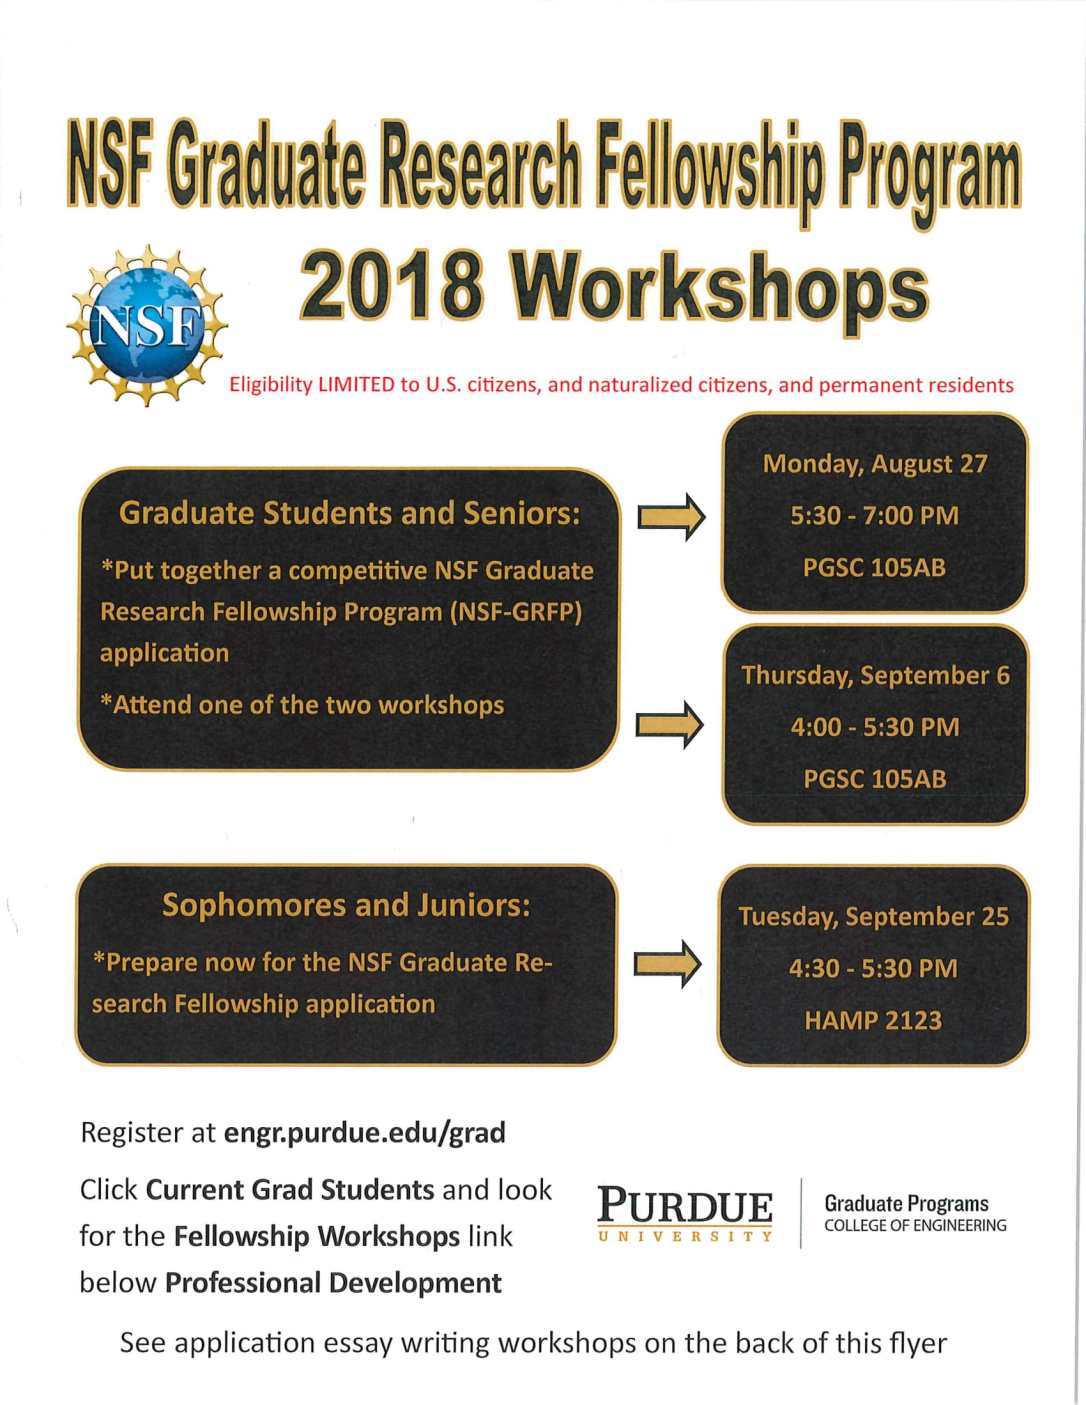 NSF workshops 2018 flyer (2)-1